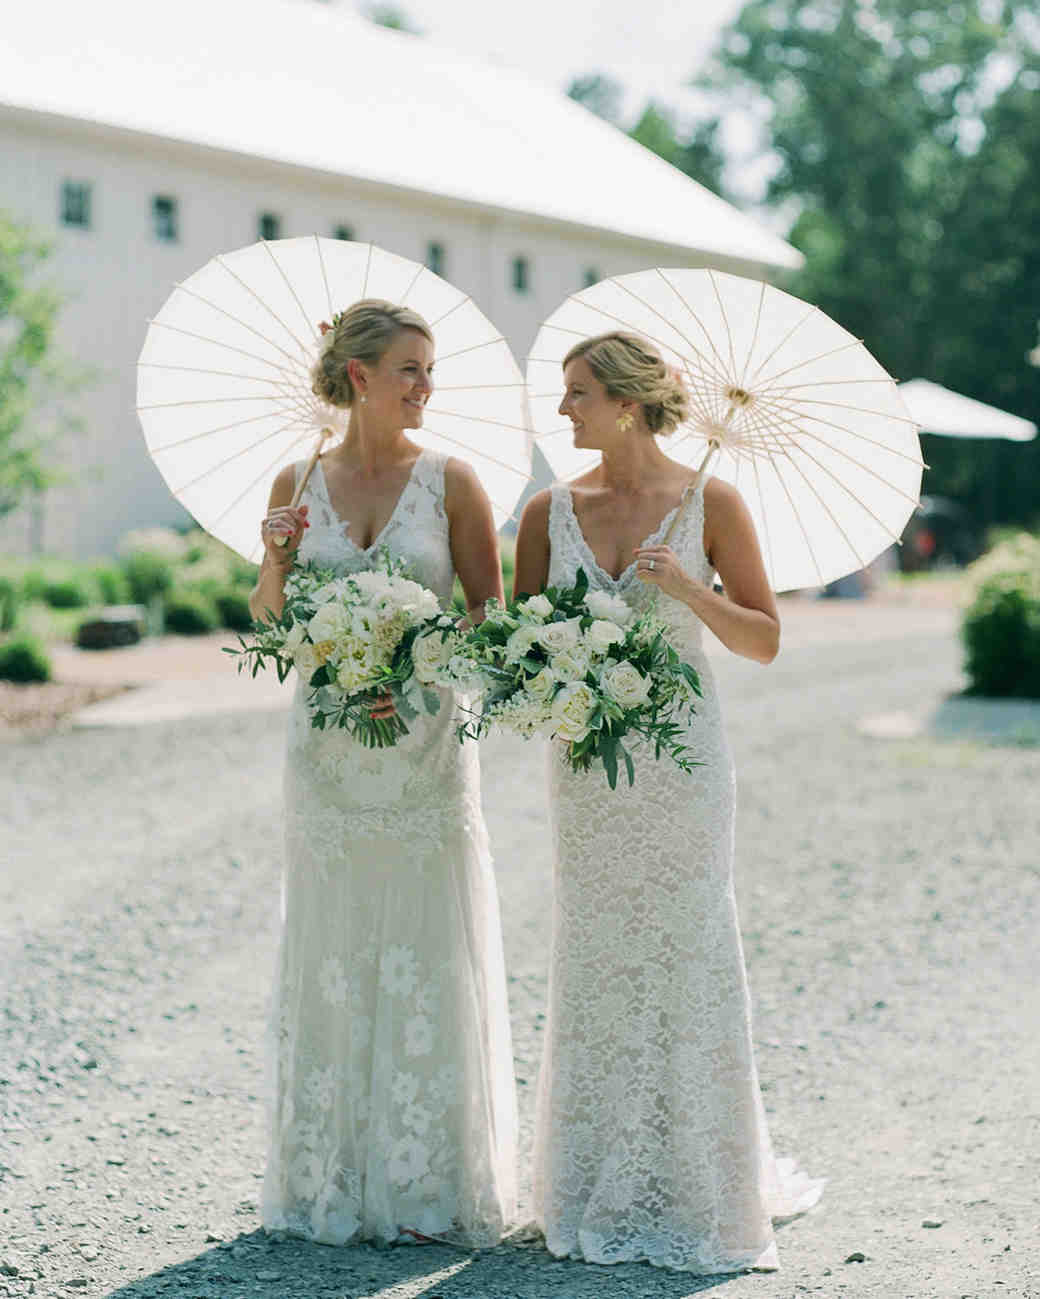 paige and kristine wedding brides holding parasols